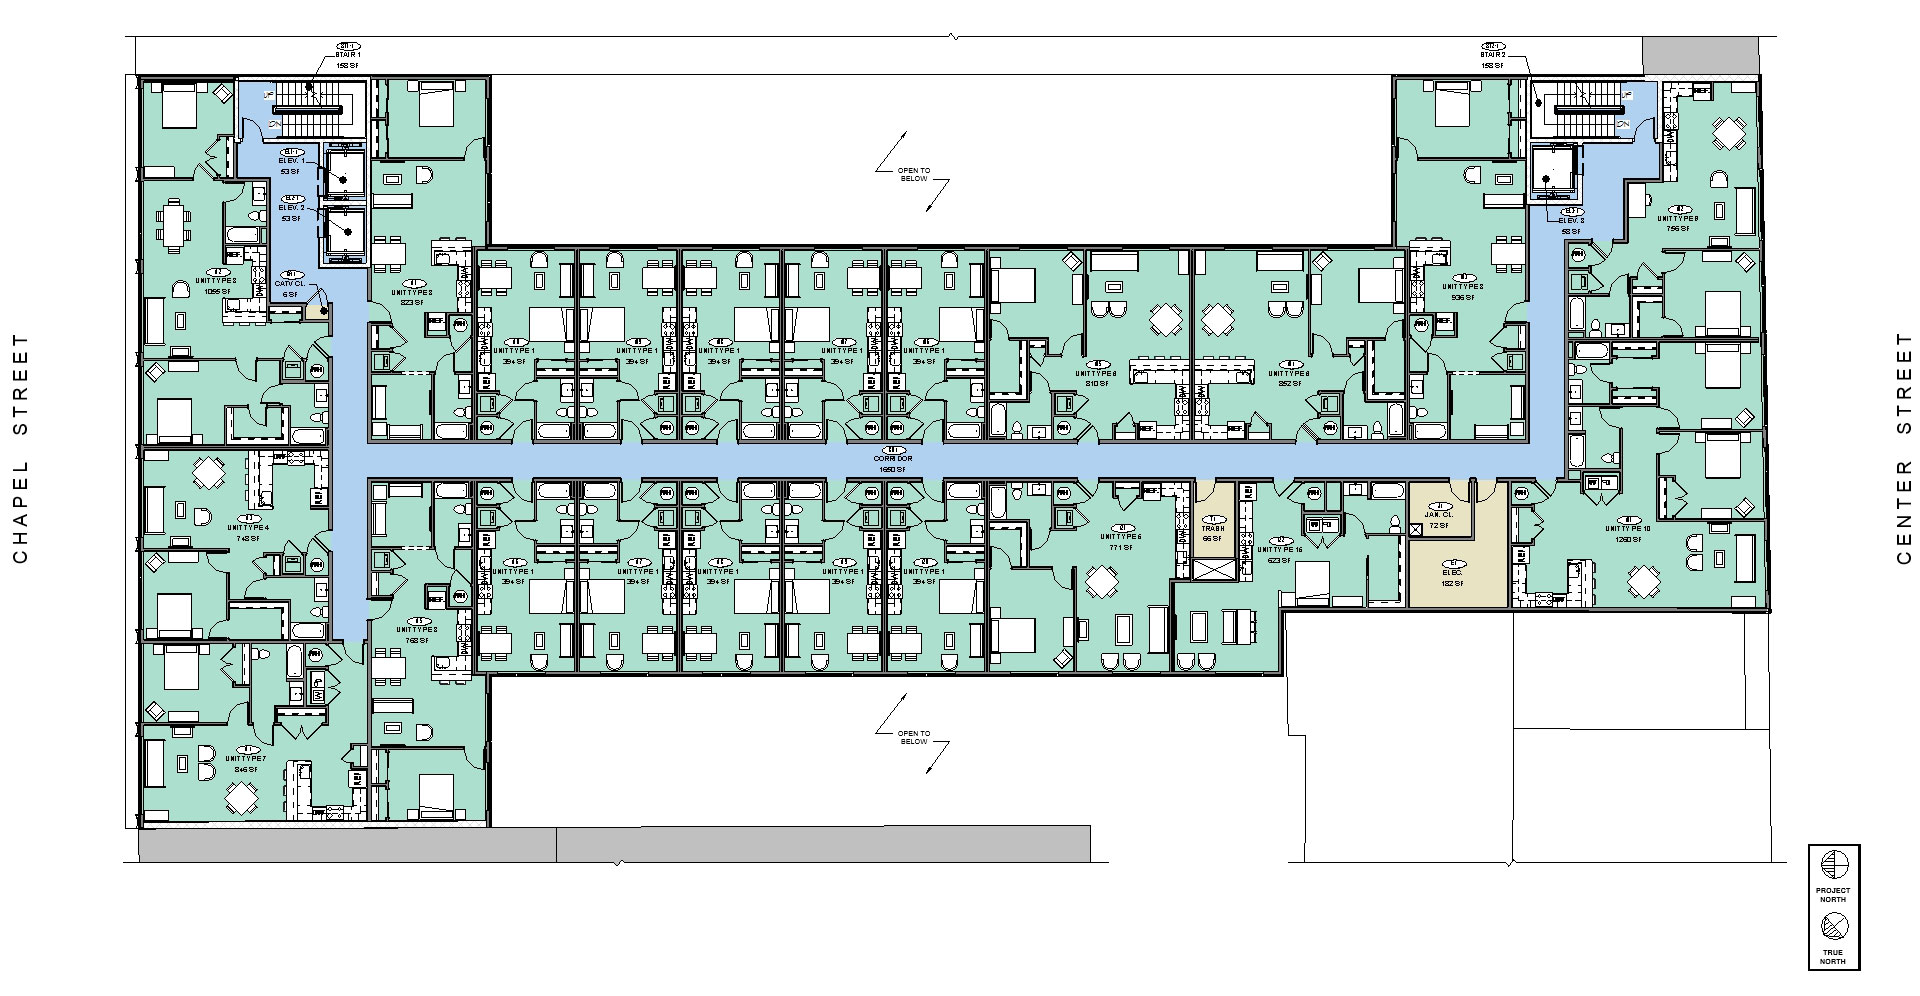 848 Chapel Street typical floor plan multi-family housing New Haven rental apartments